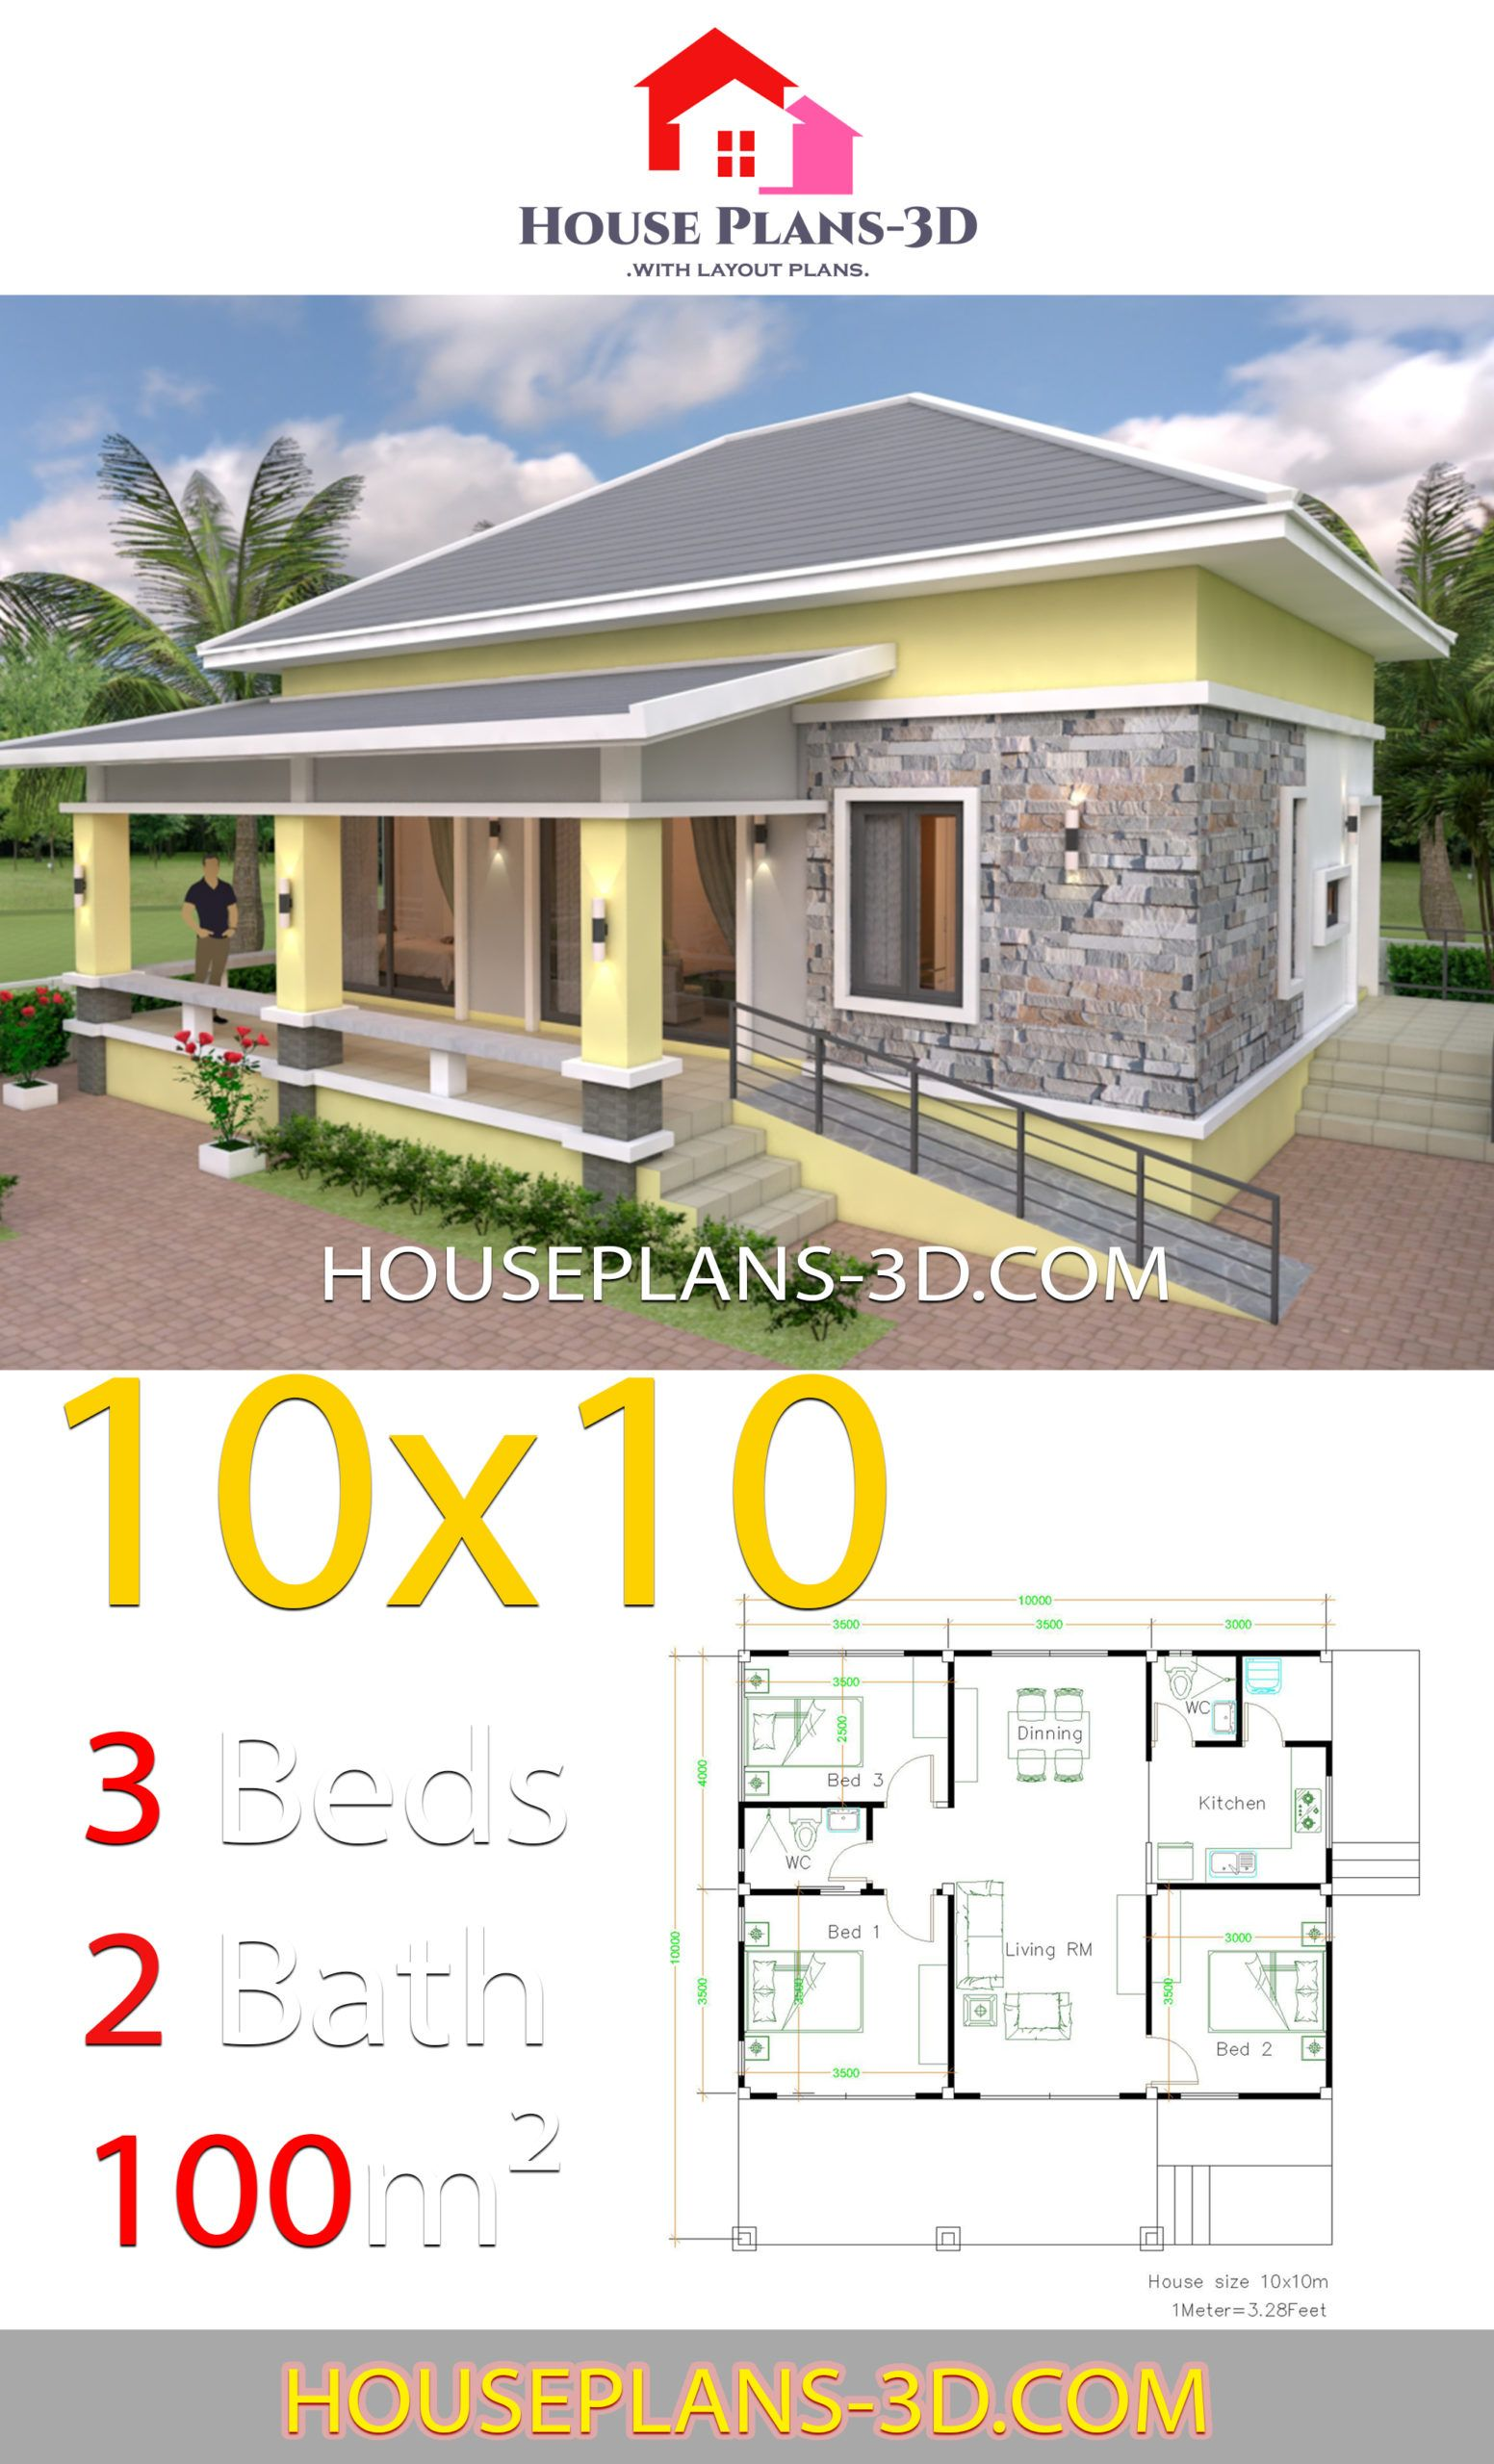 10x10 Living Room Design: House Design 10x10 With 3 Bedrooms Hip Roof